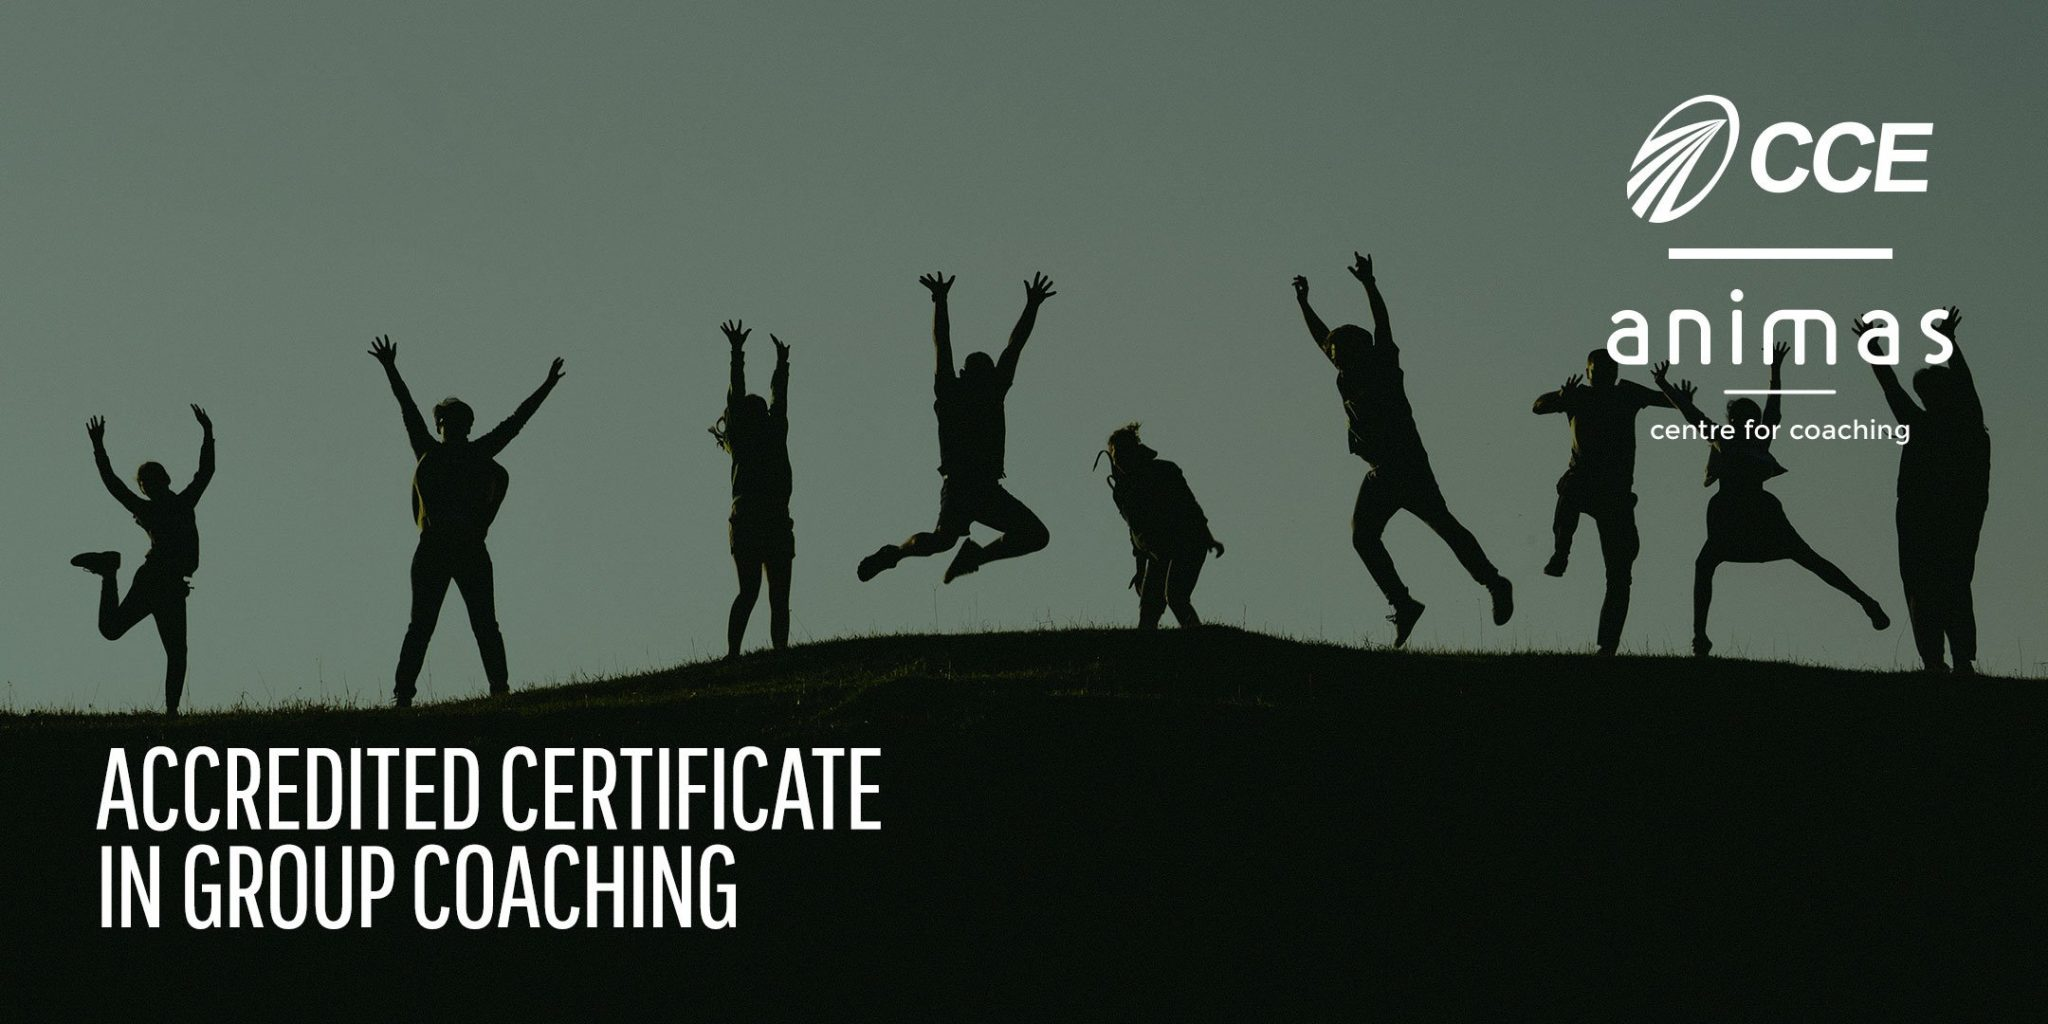 Accredited Certificate in Group Coaching